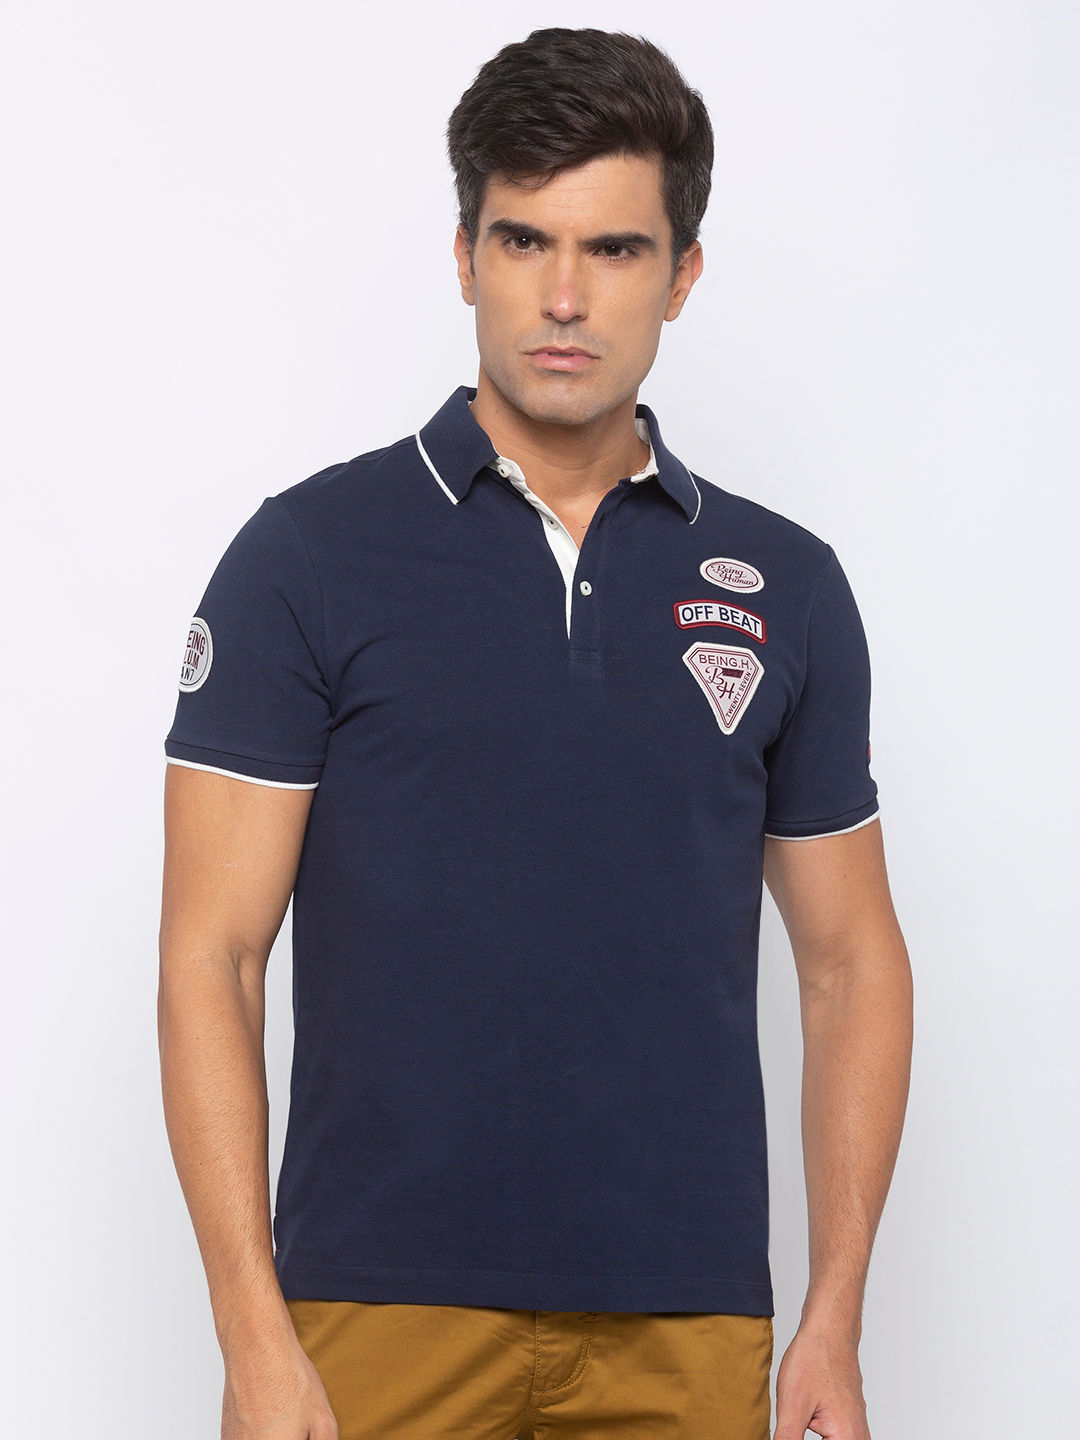 mens short sleeve polo with embroidery badge